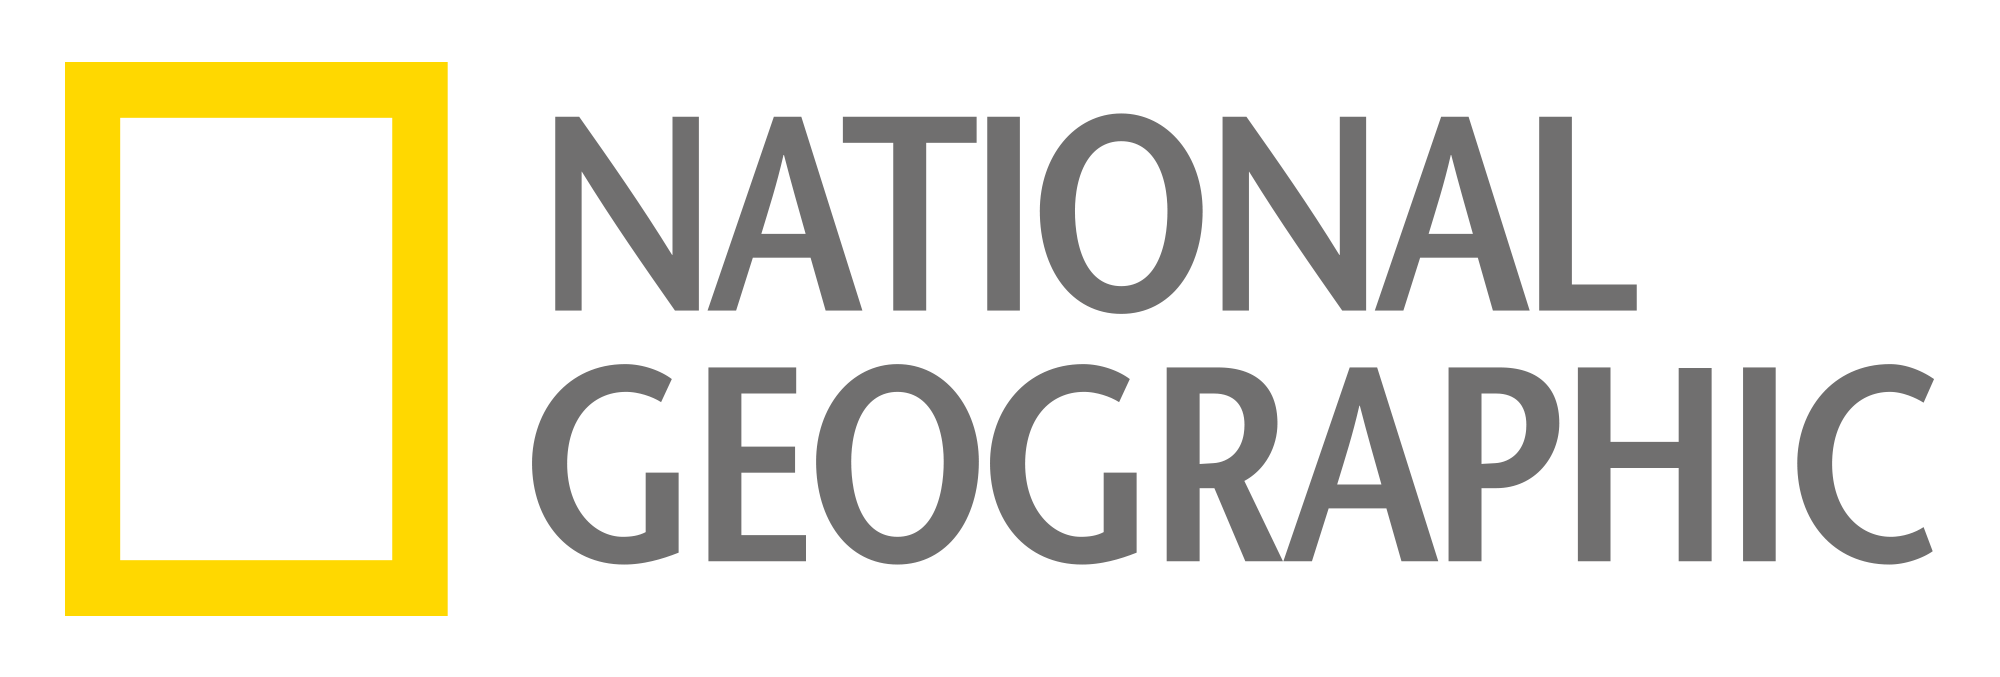 National Geographic Logo PNG - 105027